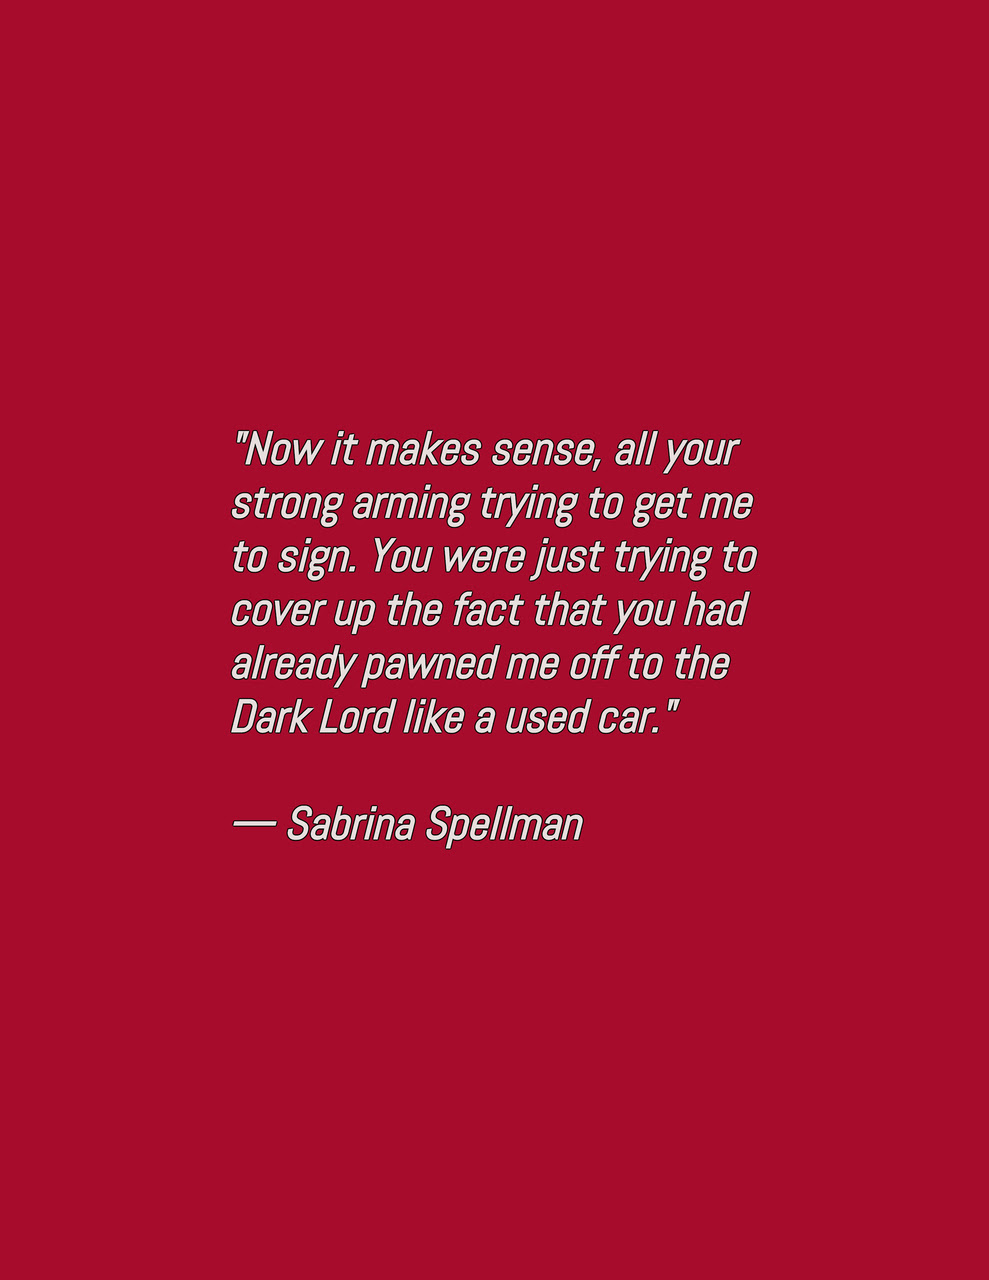 Sabrina Sabrina Spellman Quote And Chilling Image 6538504 On